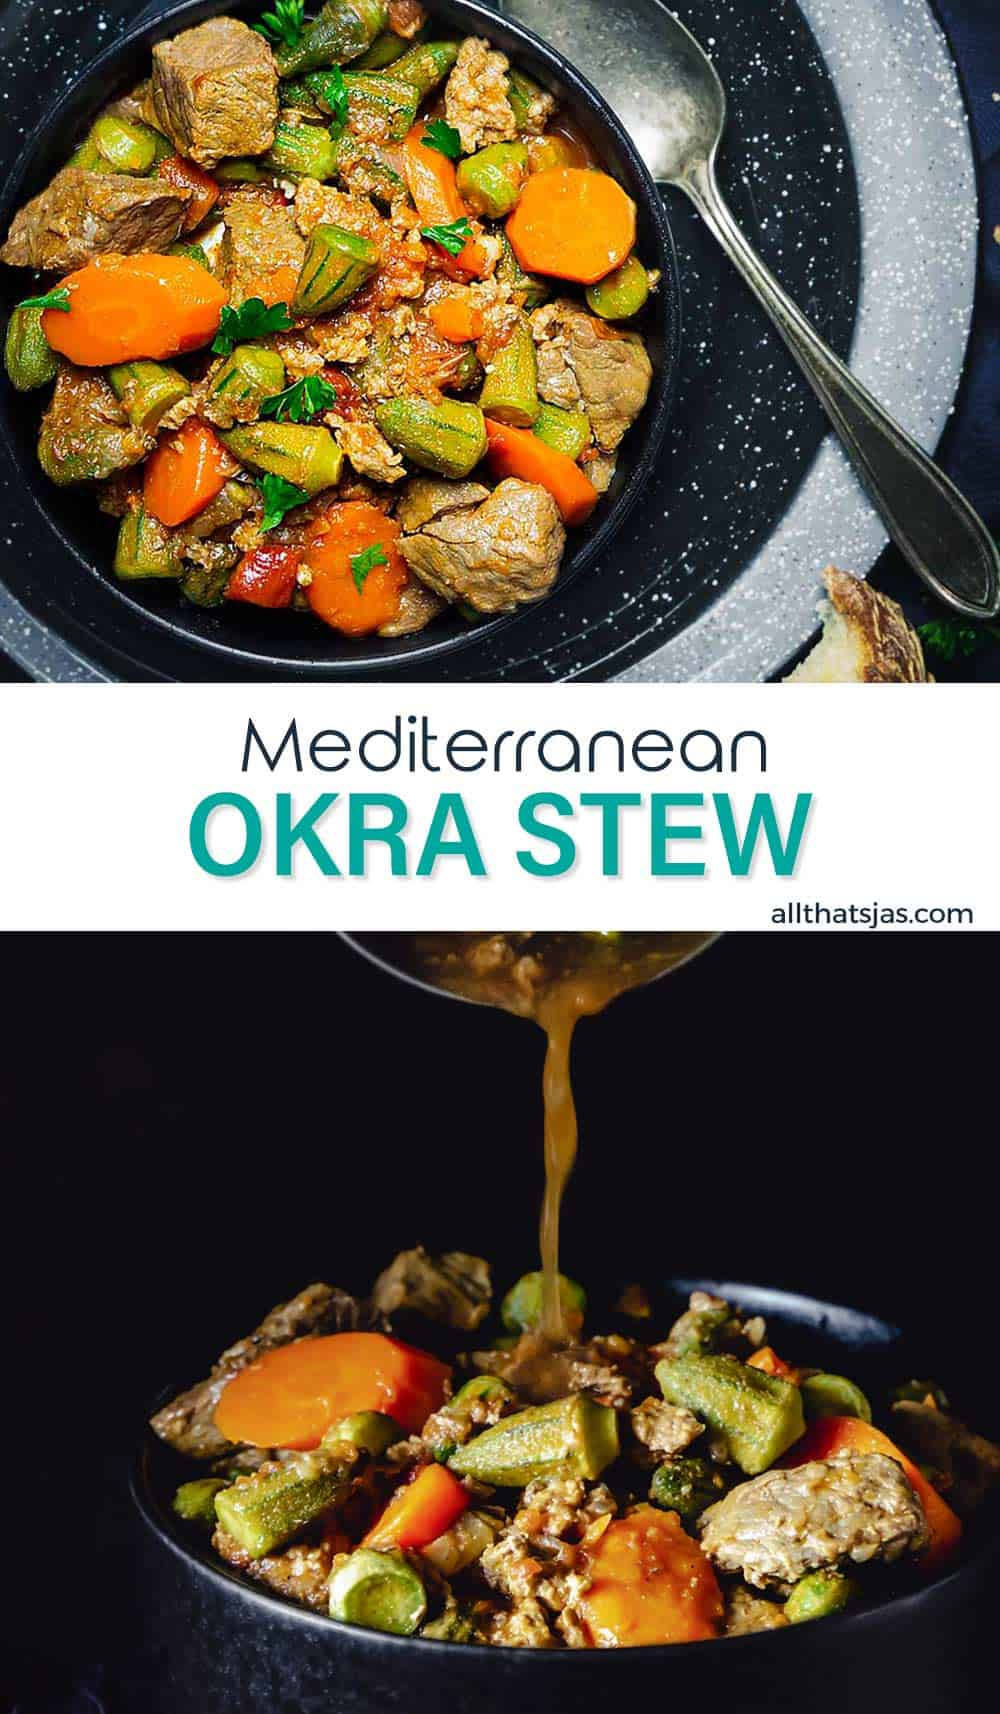 Two photo image of okra stew with text overlay in the middle.